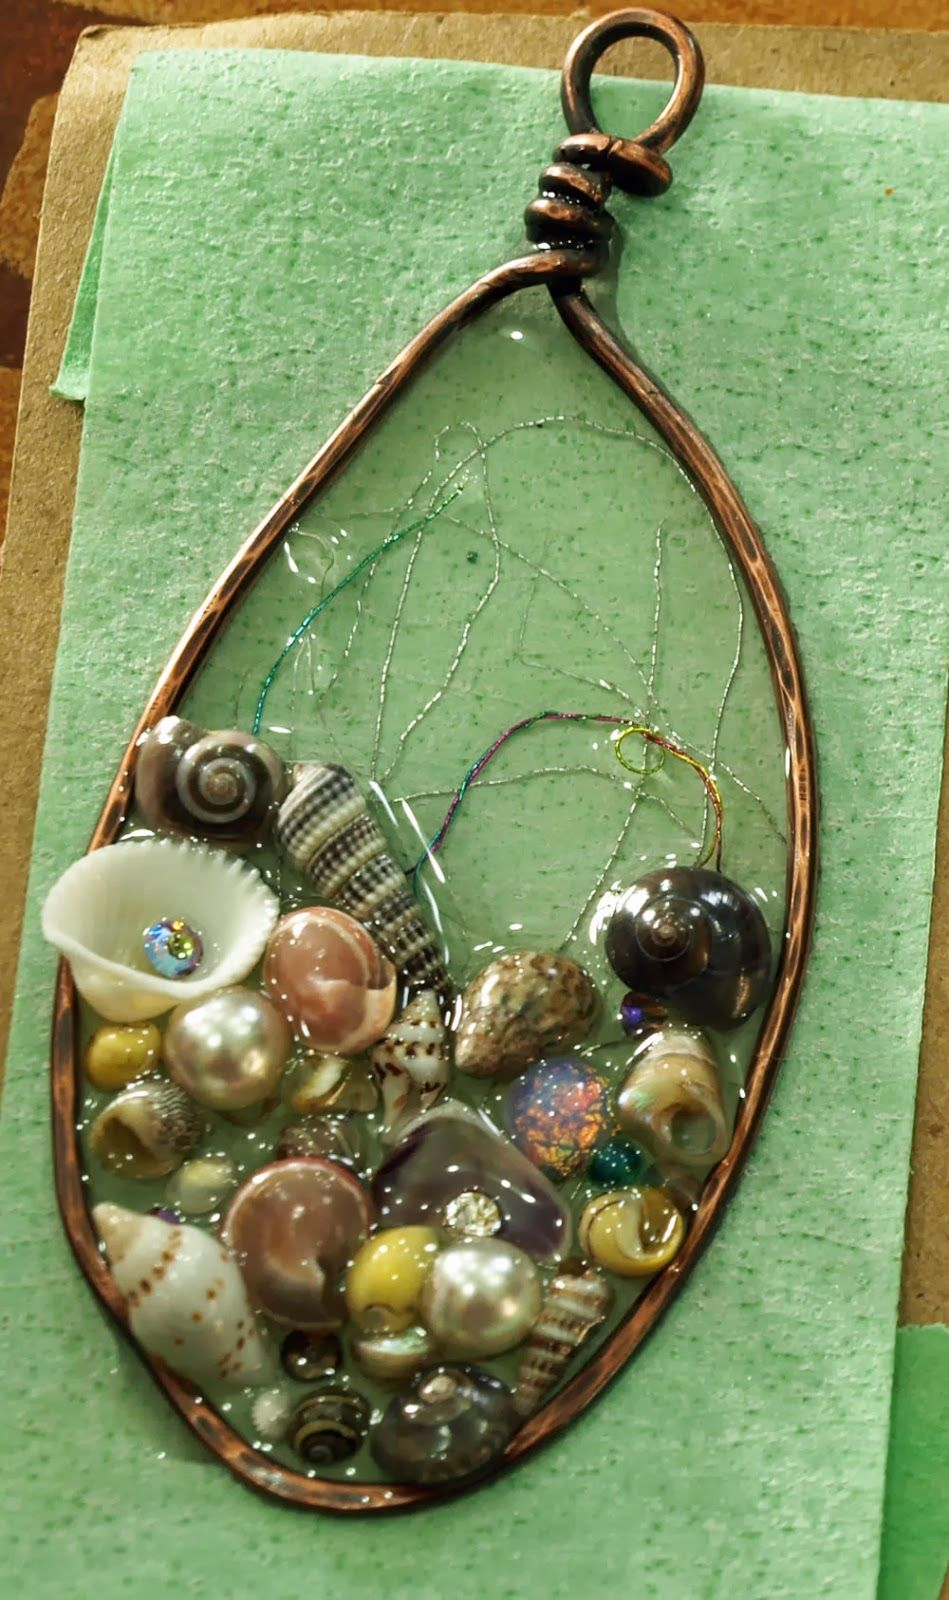 Pin by Cathy Casey on jewelry    | Resin jewelry, Jewelry